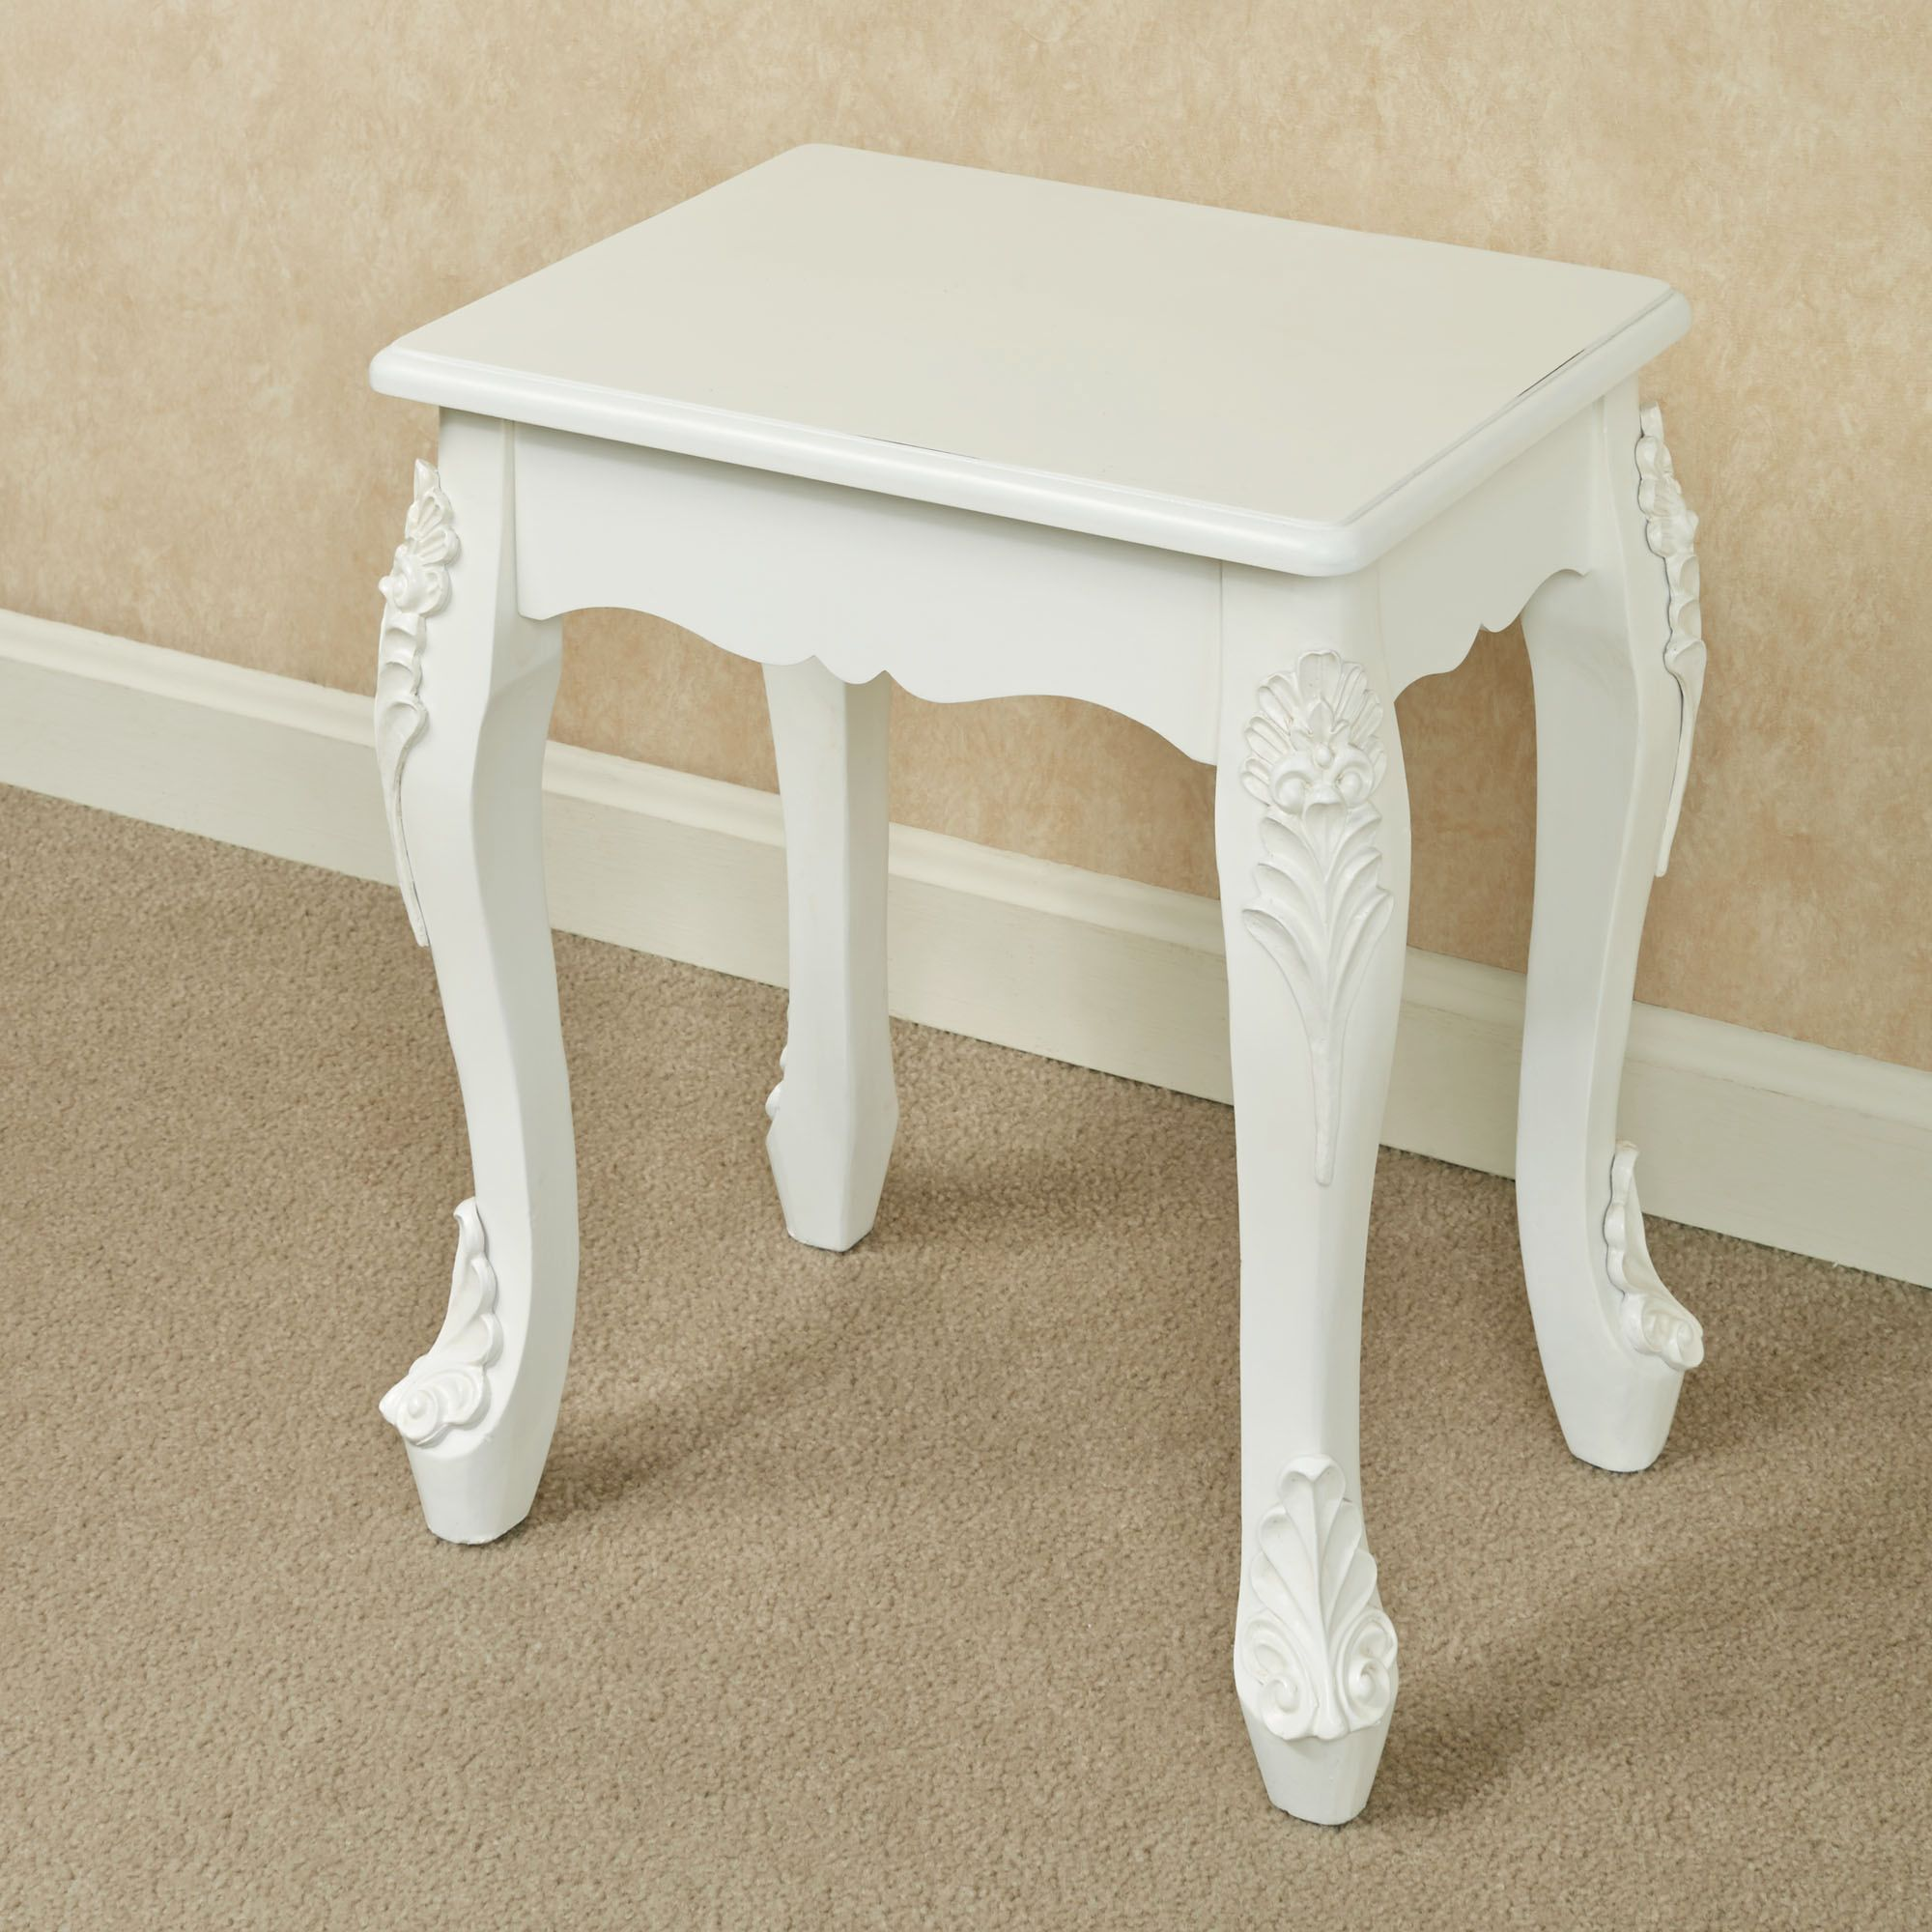 Fascinating vanity stools for home furniture with vanity stool ikea